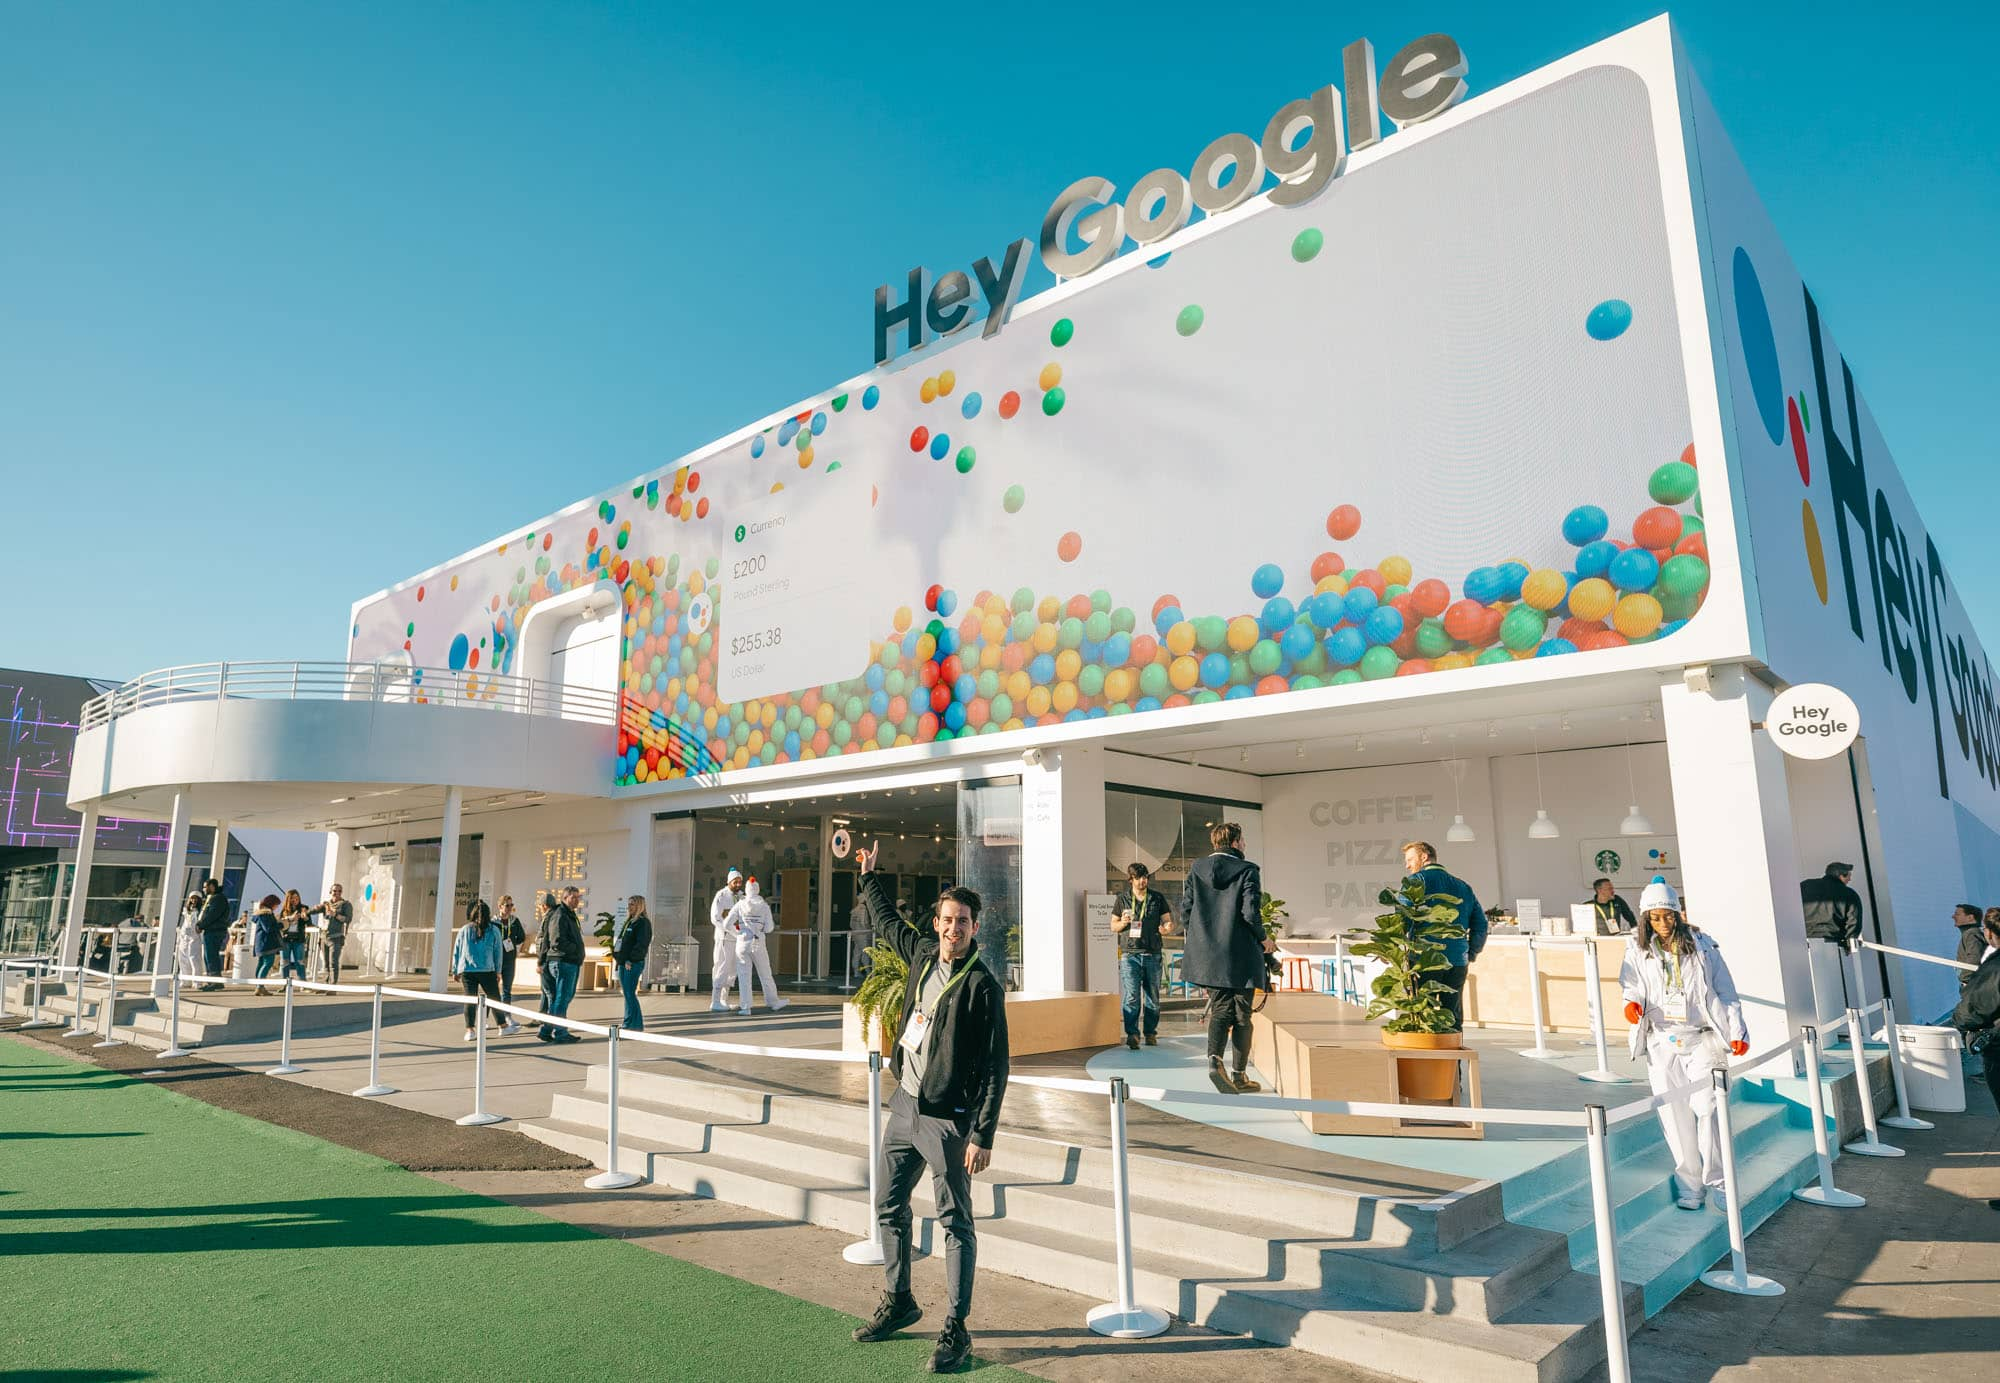 CES Google Las Vegas photo booth experience